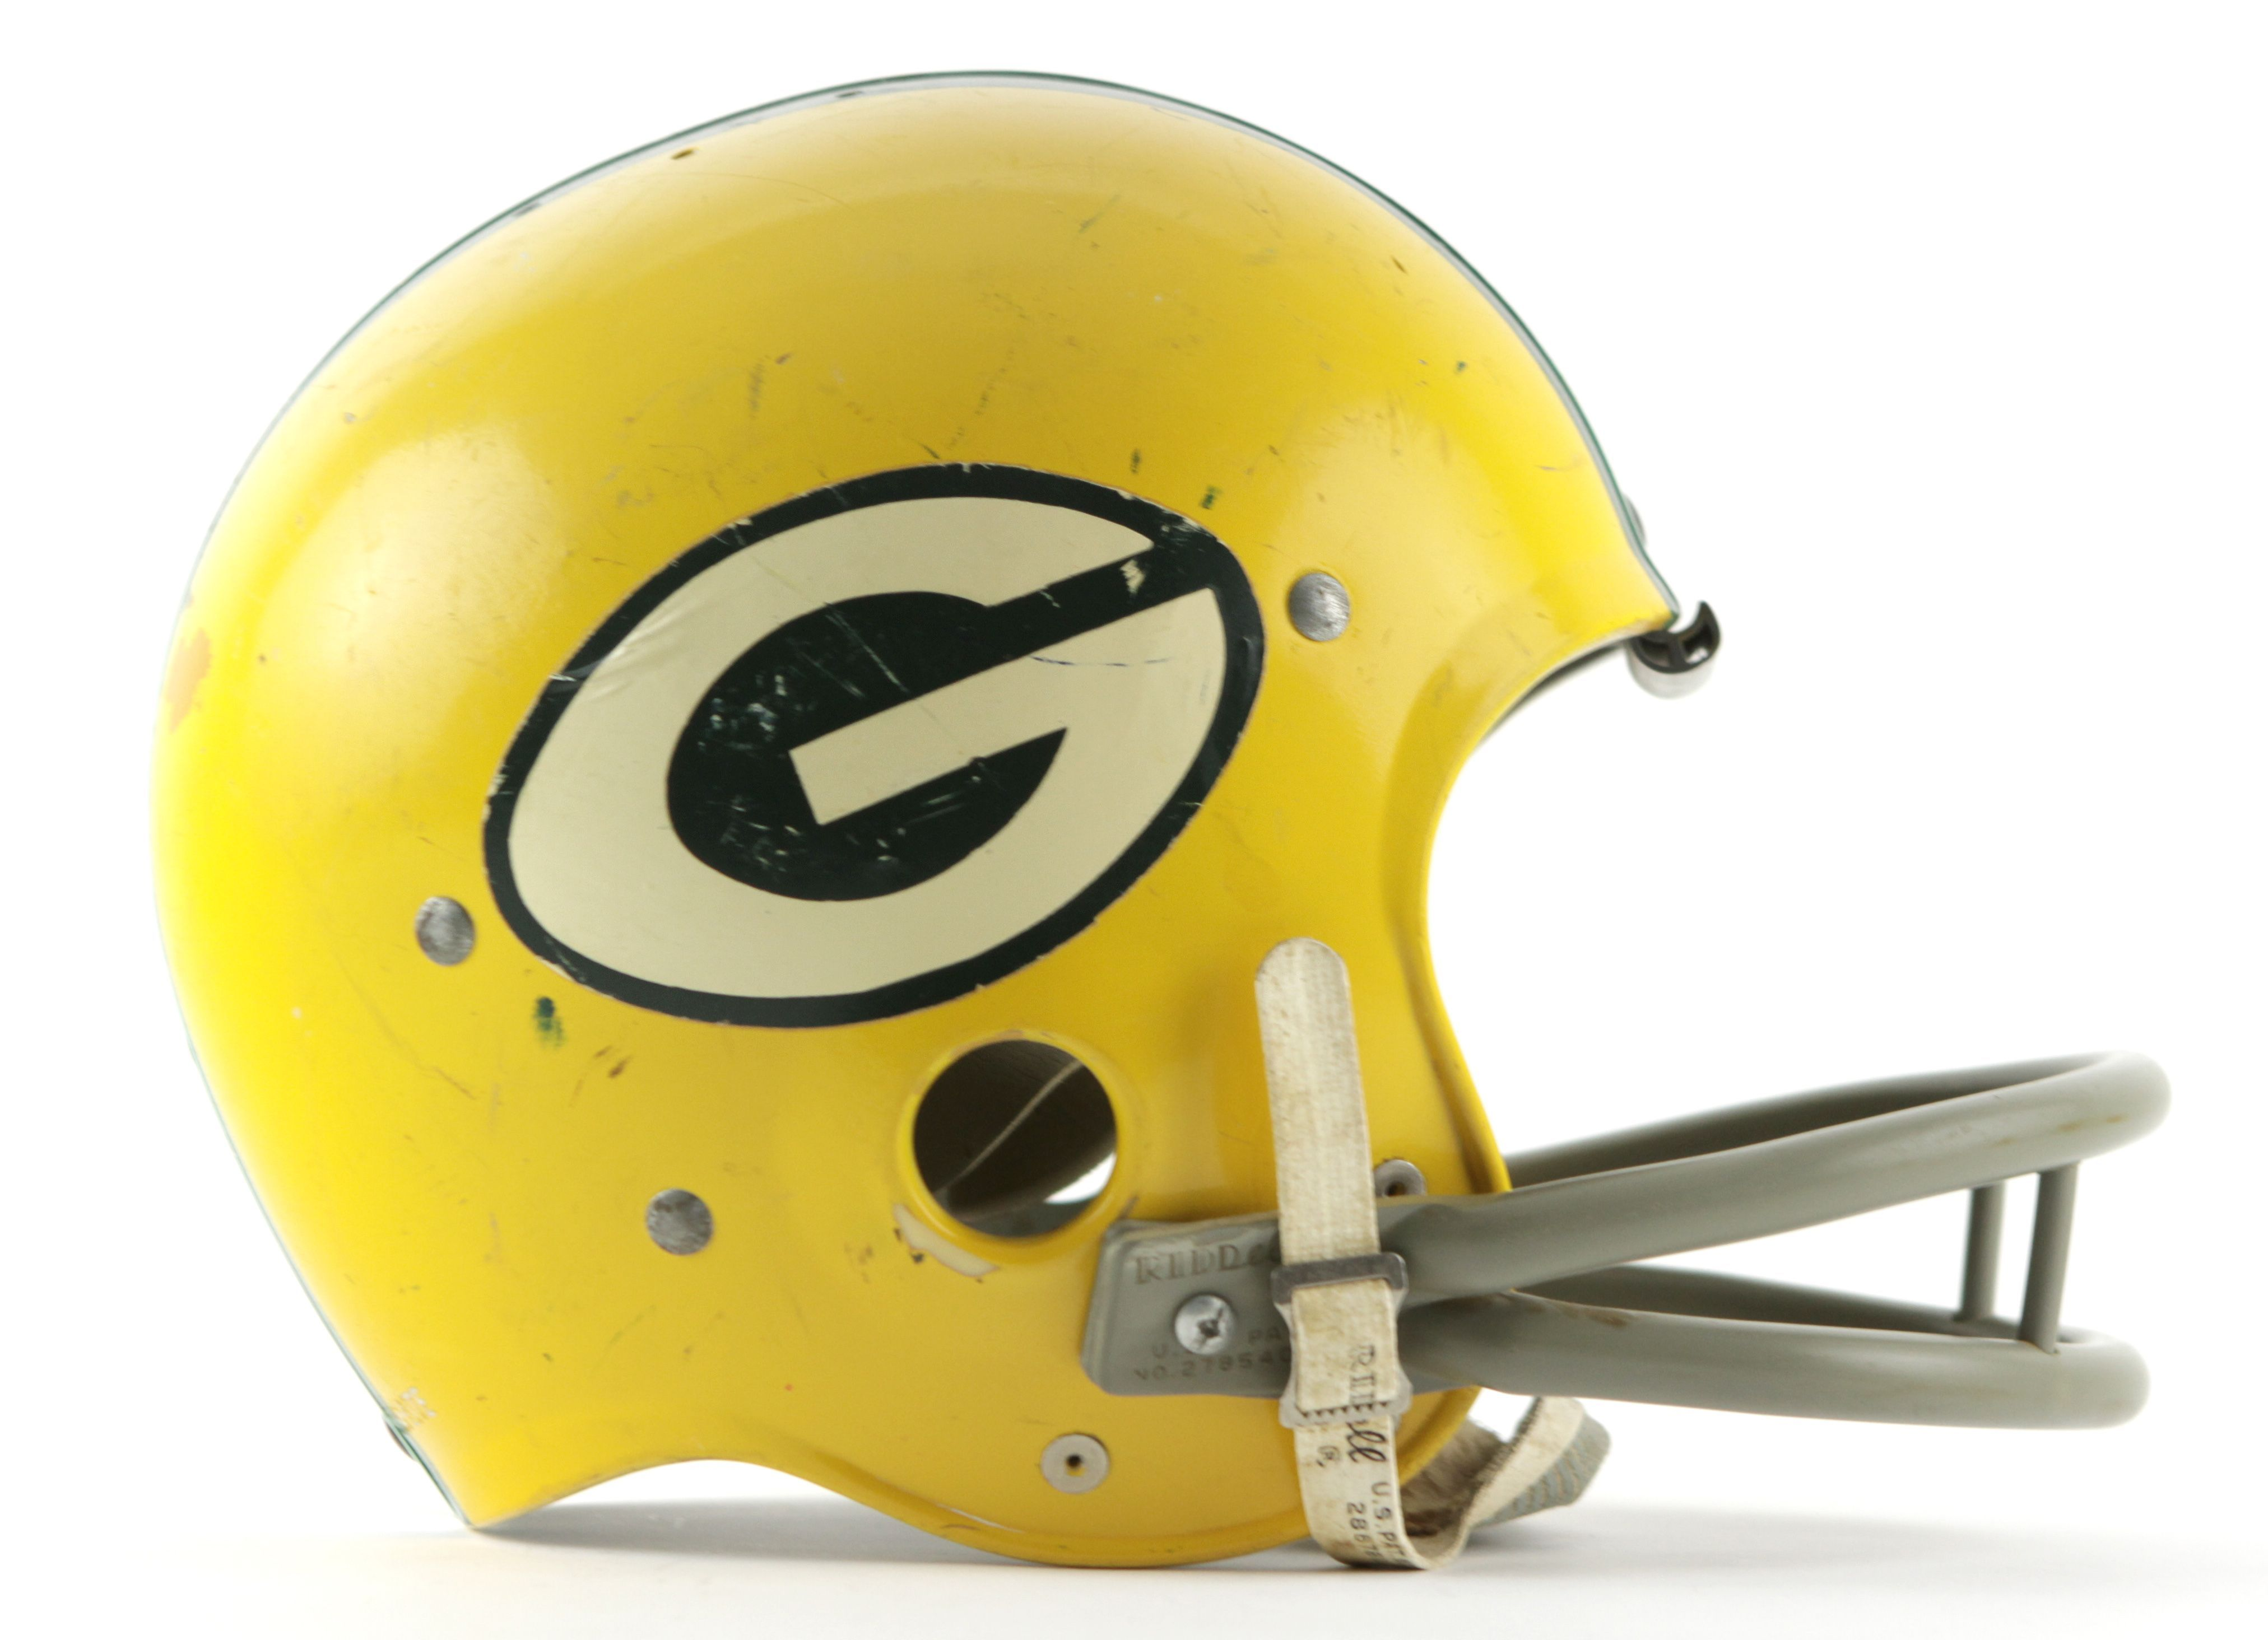 Image Result For Green Bay Packers Helmet 1960s Green Bay Packers Helmet Green Bay Packers Helmet